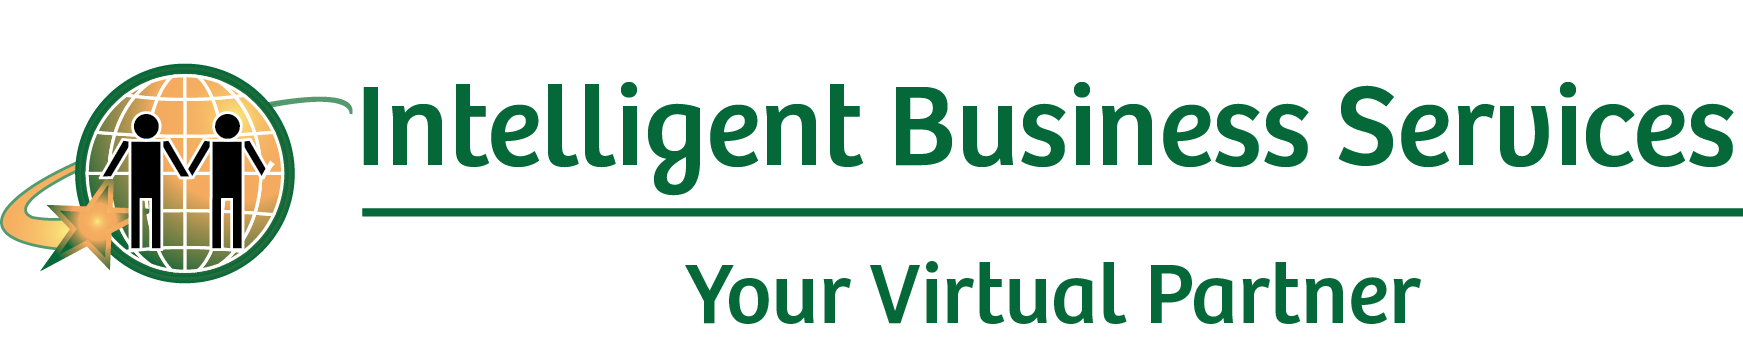 Intelligent Business Services Header